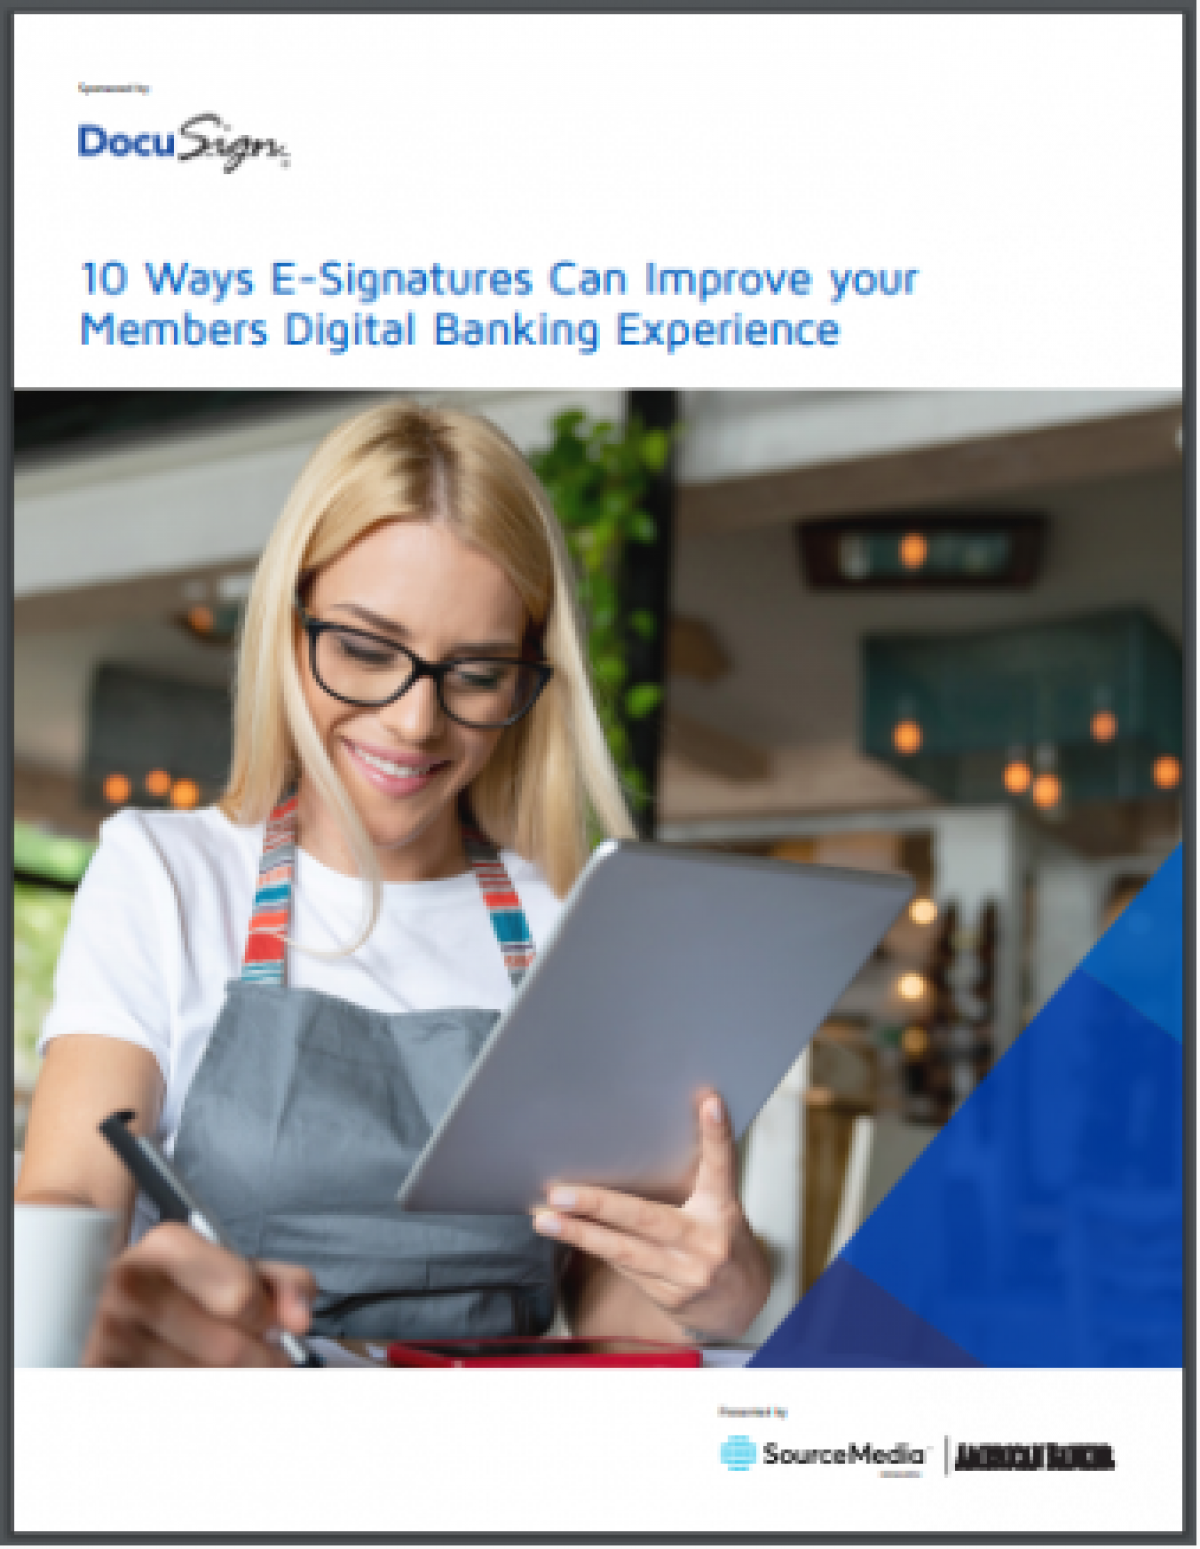 10 Ways eSignatures Can Improve Your Members' Digital Banking Experience